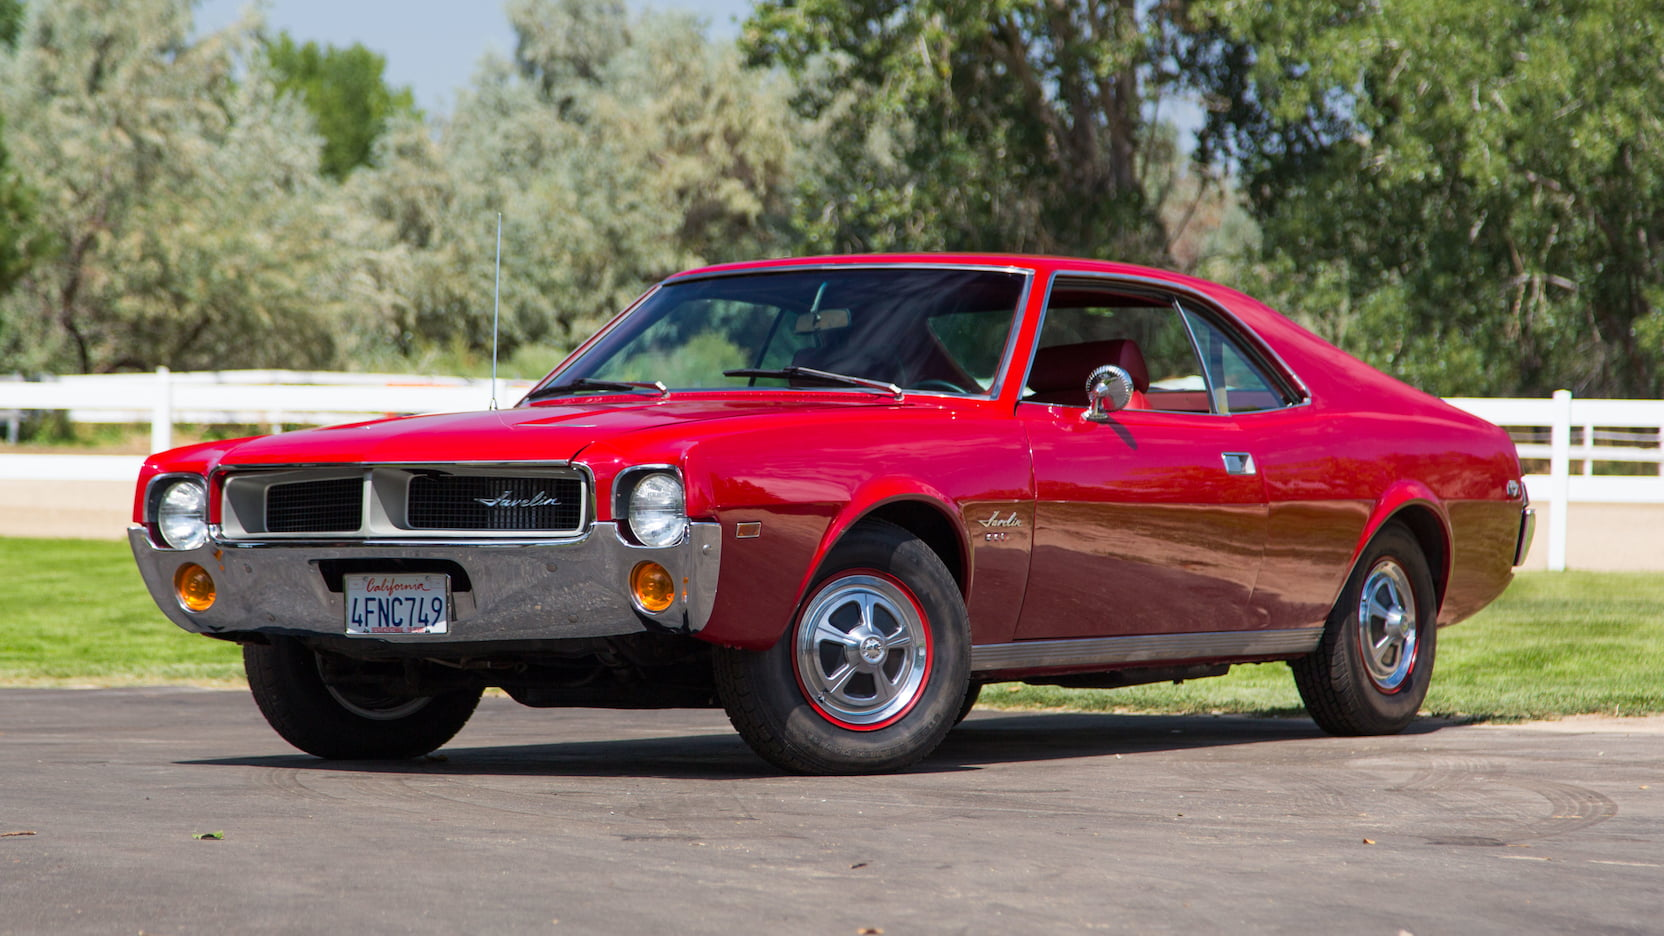 AMC Javelin values are steady as a rock thumbnail